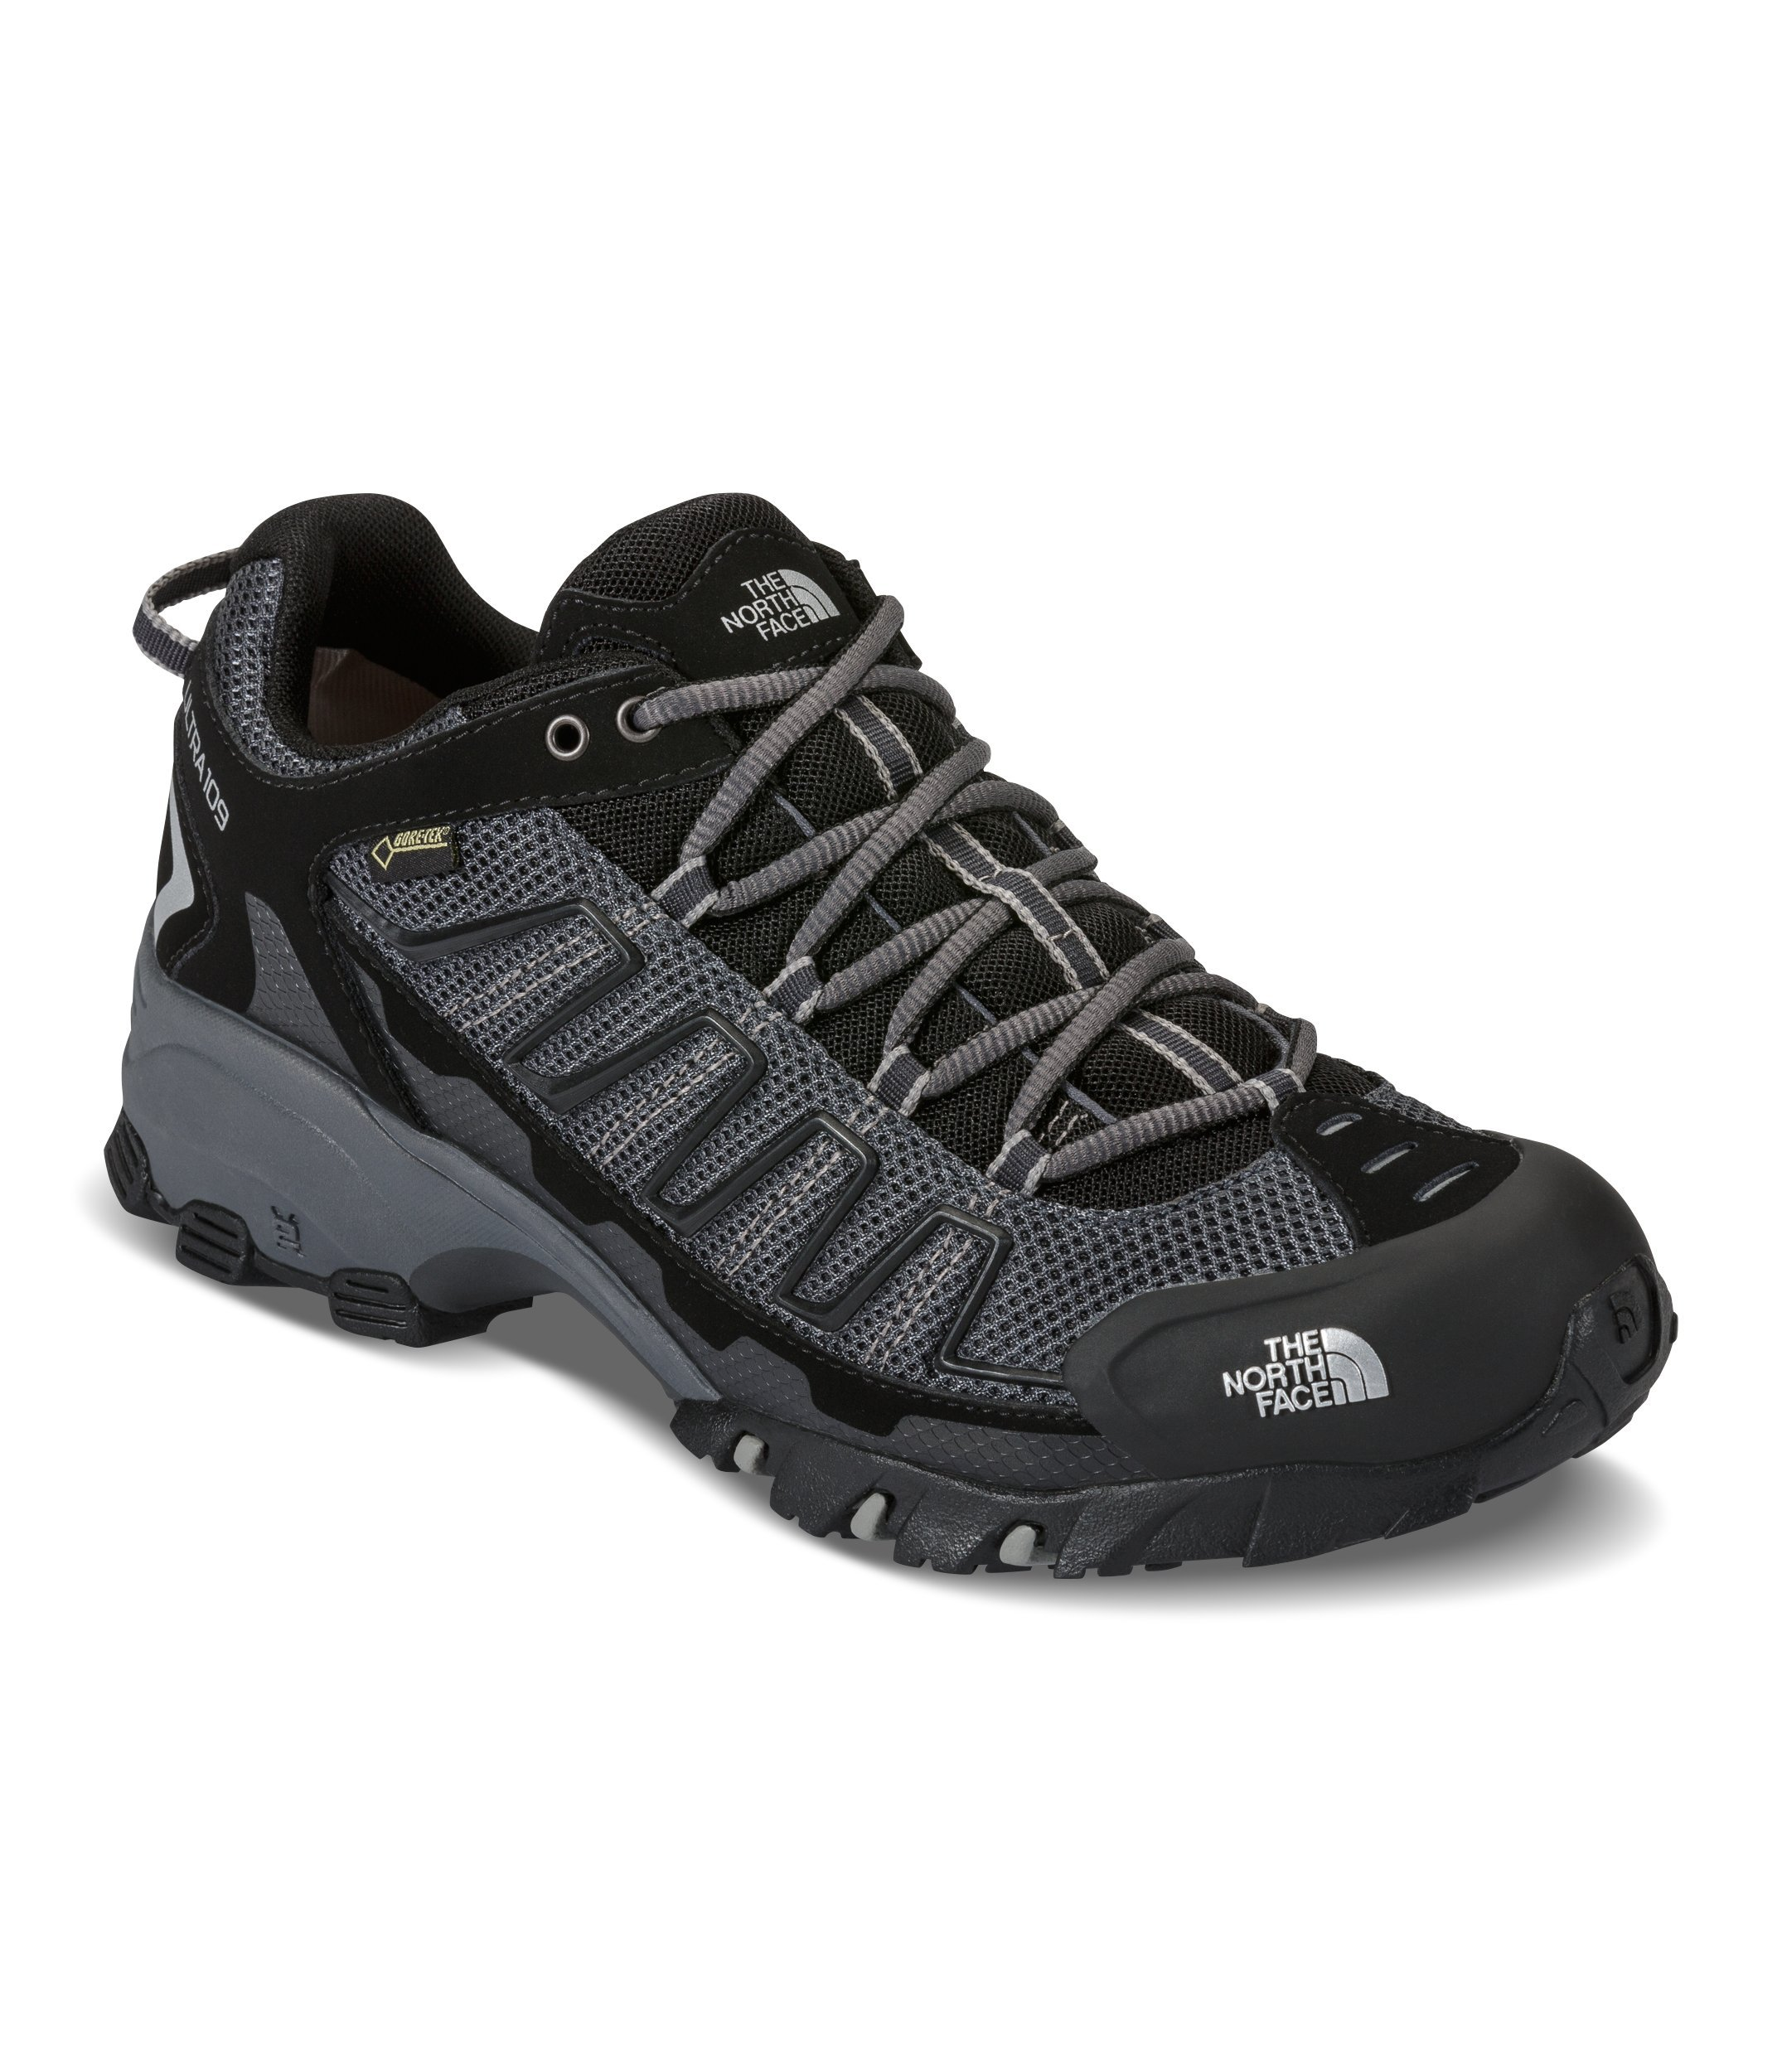 The North Face Mens Ultra 109 GTX Hiking Shoe TNF Black/Dark Shadow Grey - 12 D(M) US by The North Face